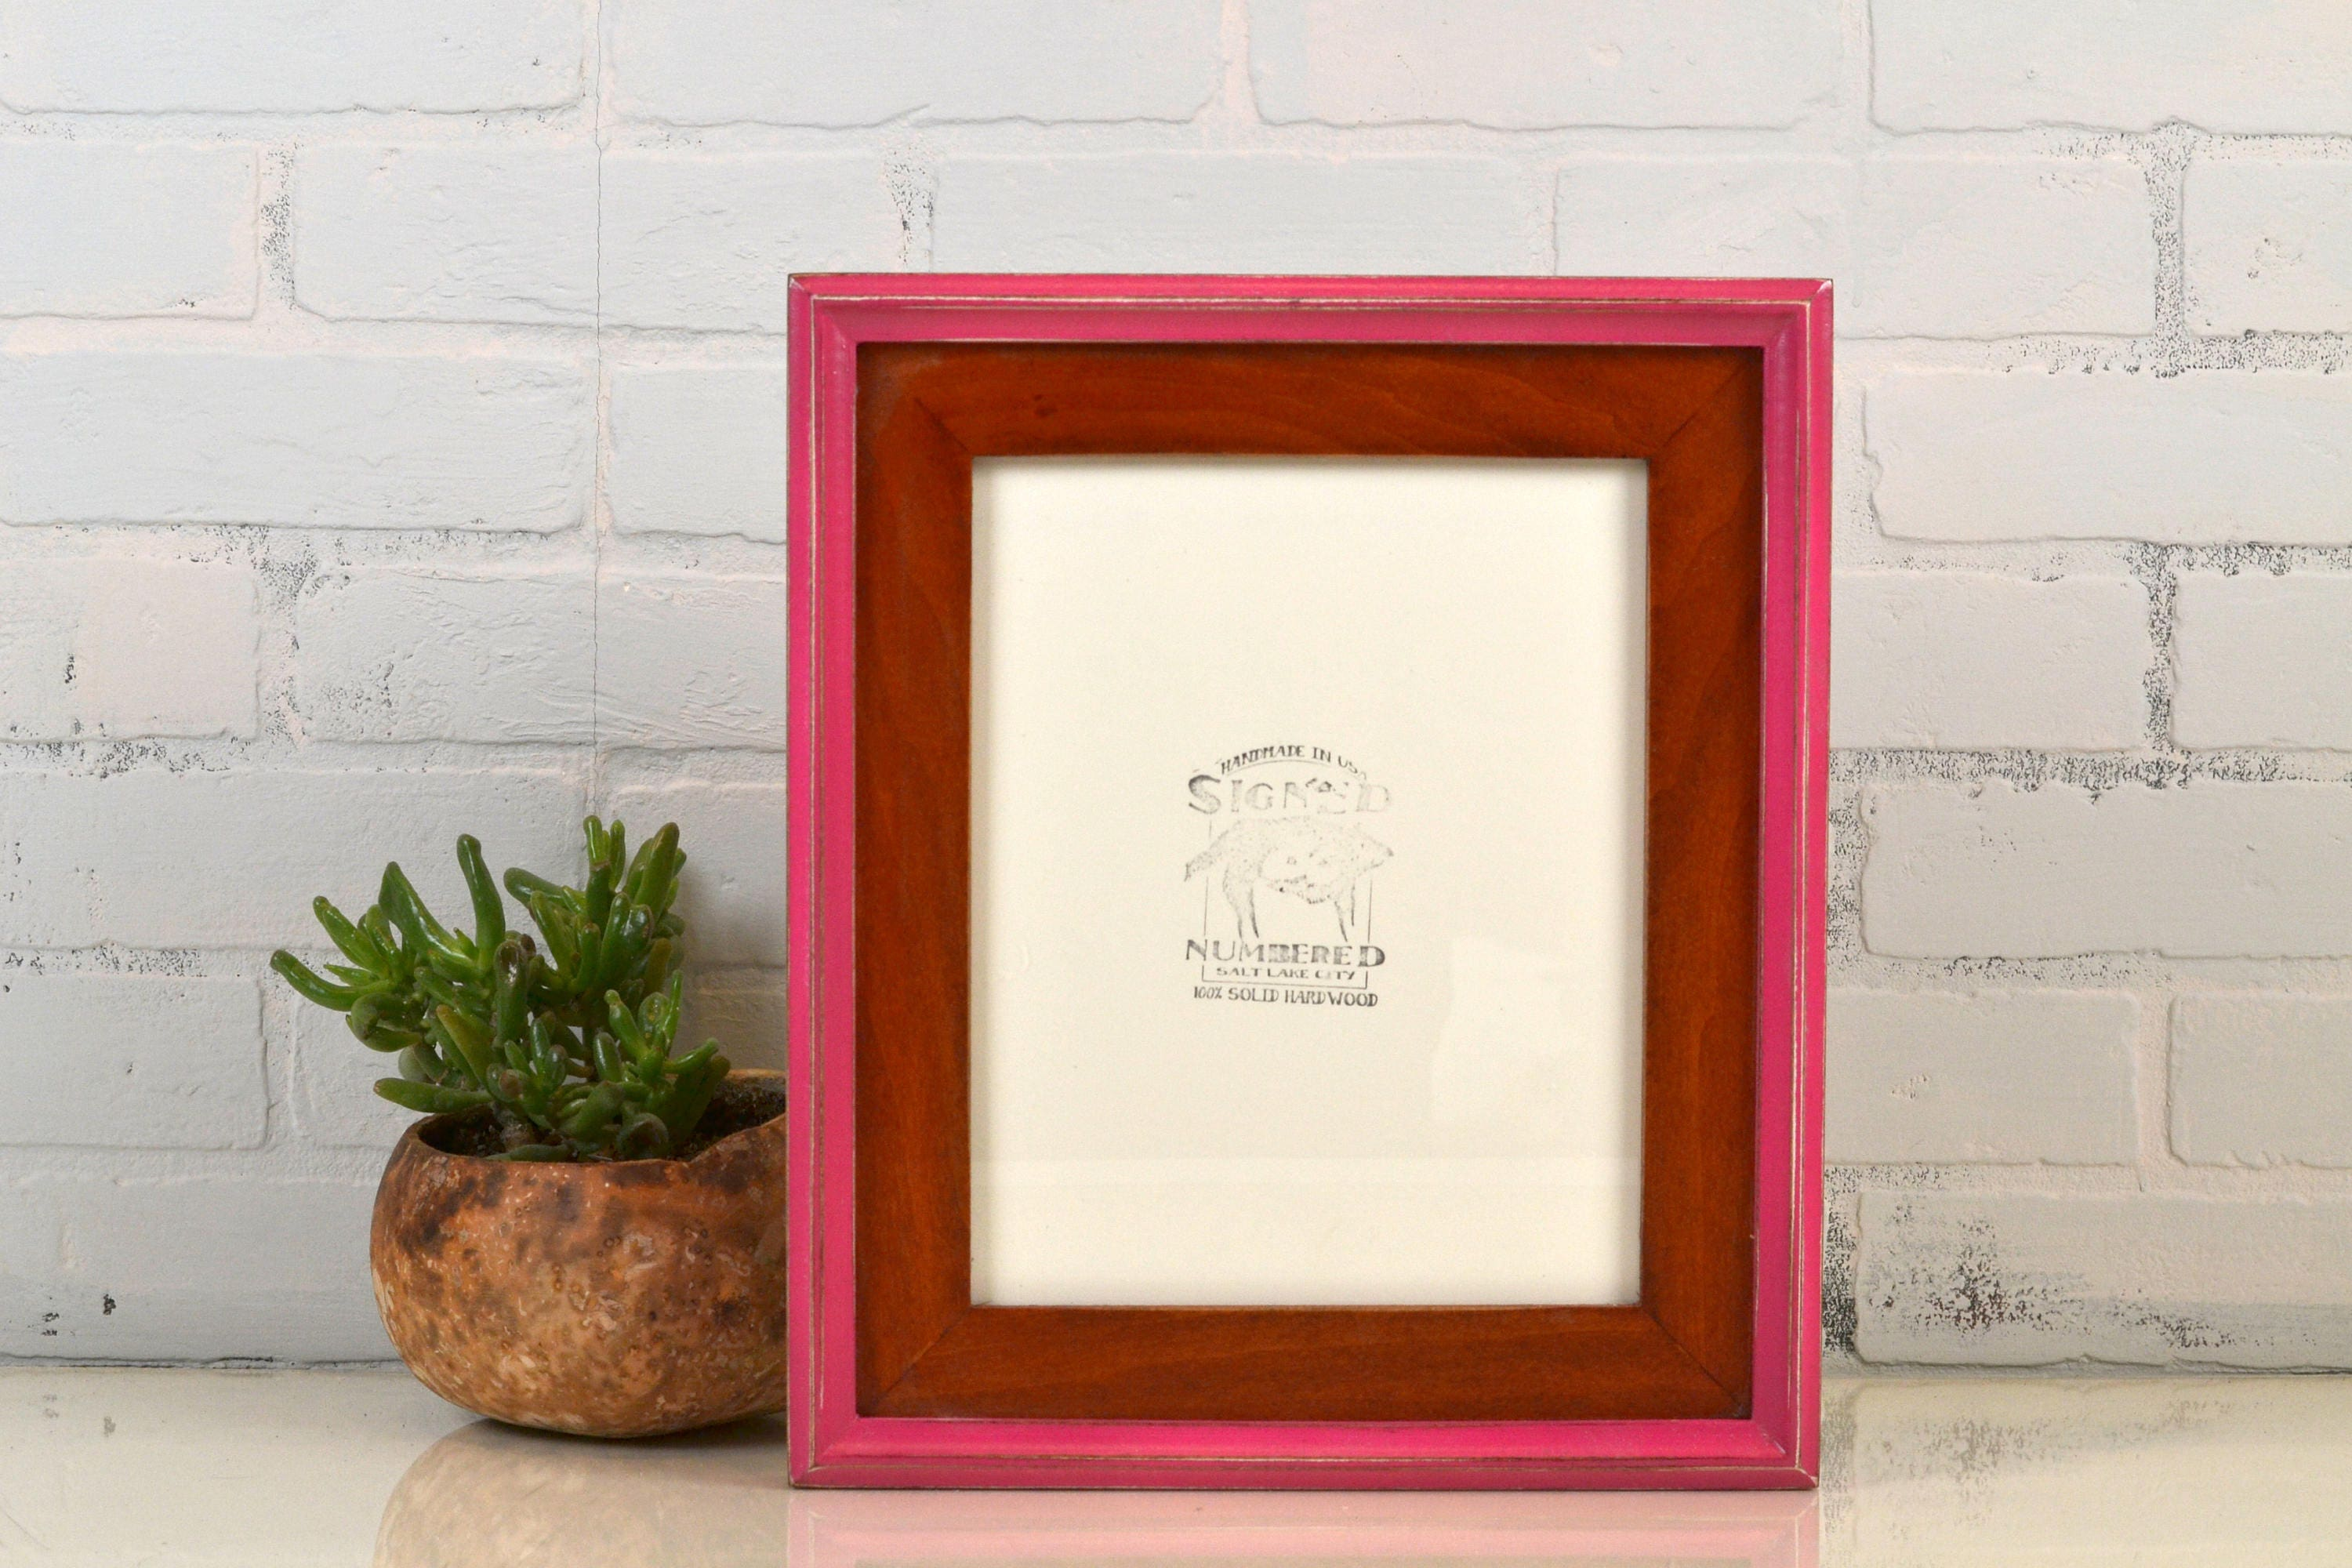 8x10 Picture Frame in Build Up Style with Vintage Wood Tone and ...